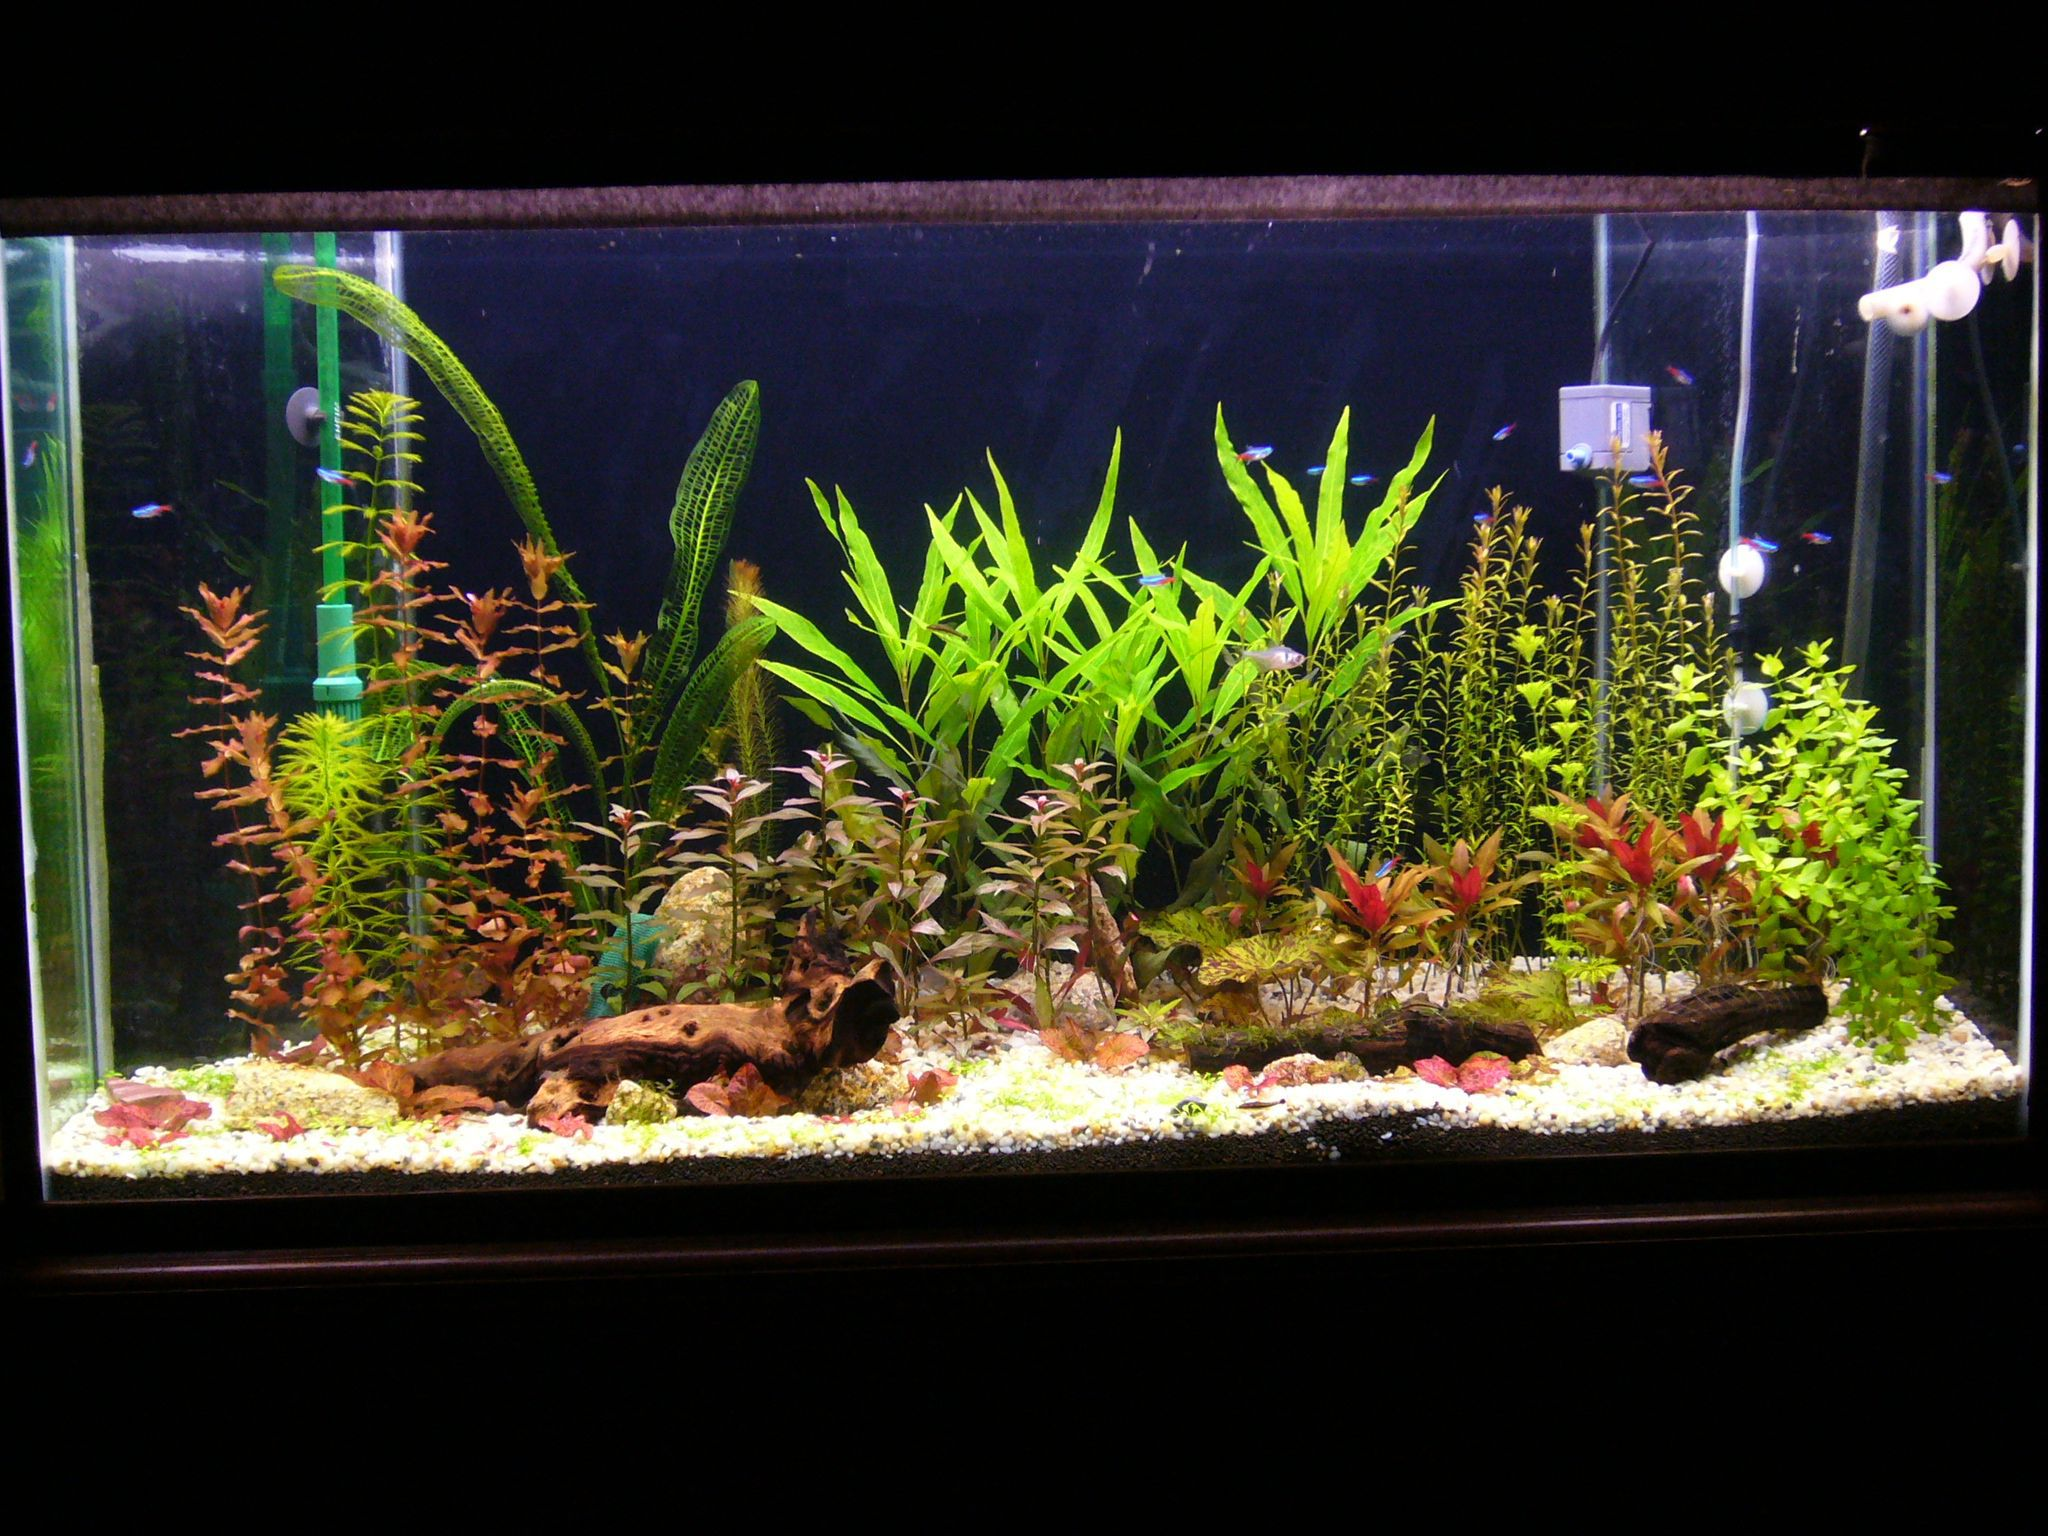 Aquarium plants real or artificial - Aquarium einrichtungsideen ...